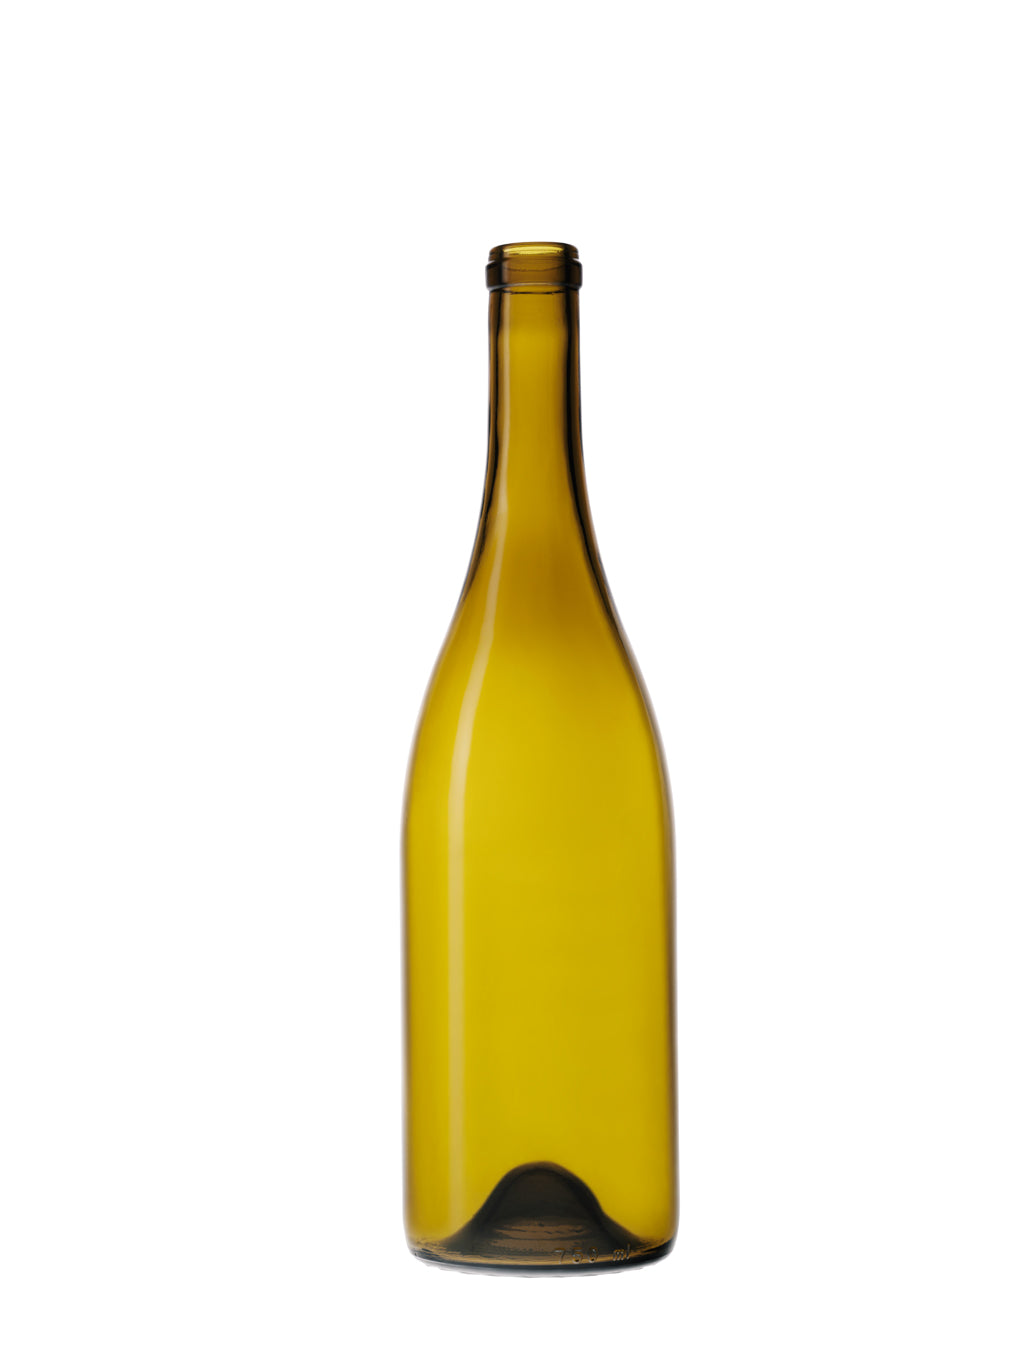 Bergstrom, Sigrid, Chardonnay, WIlliamette Valley 2014